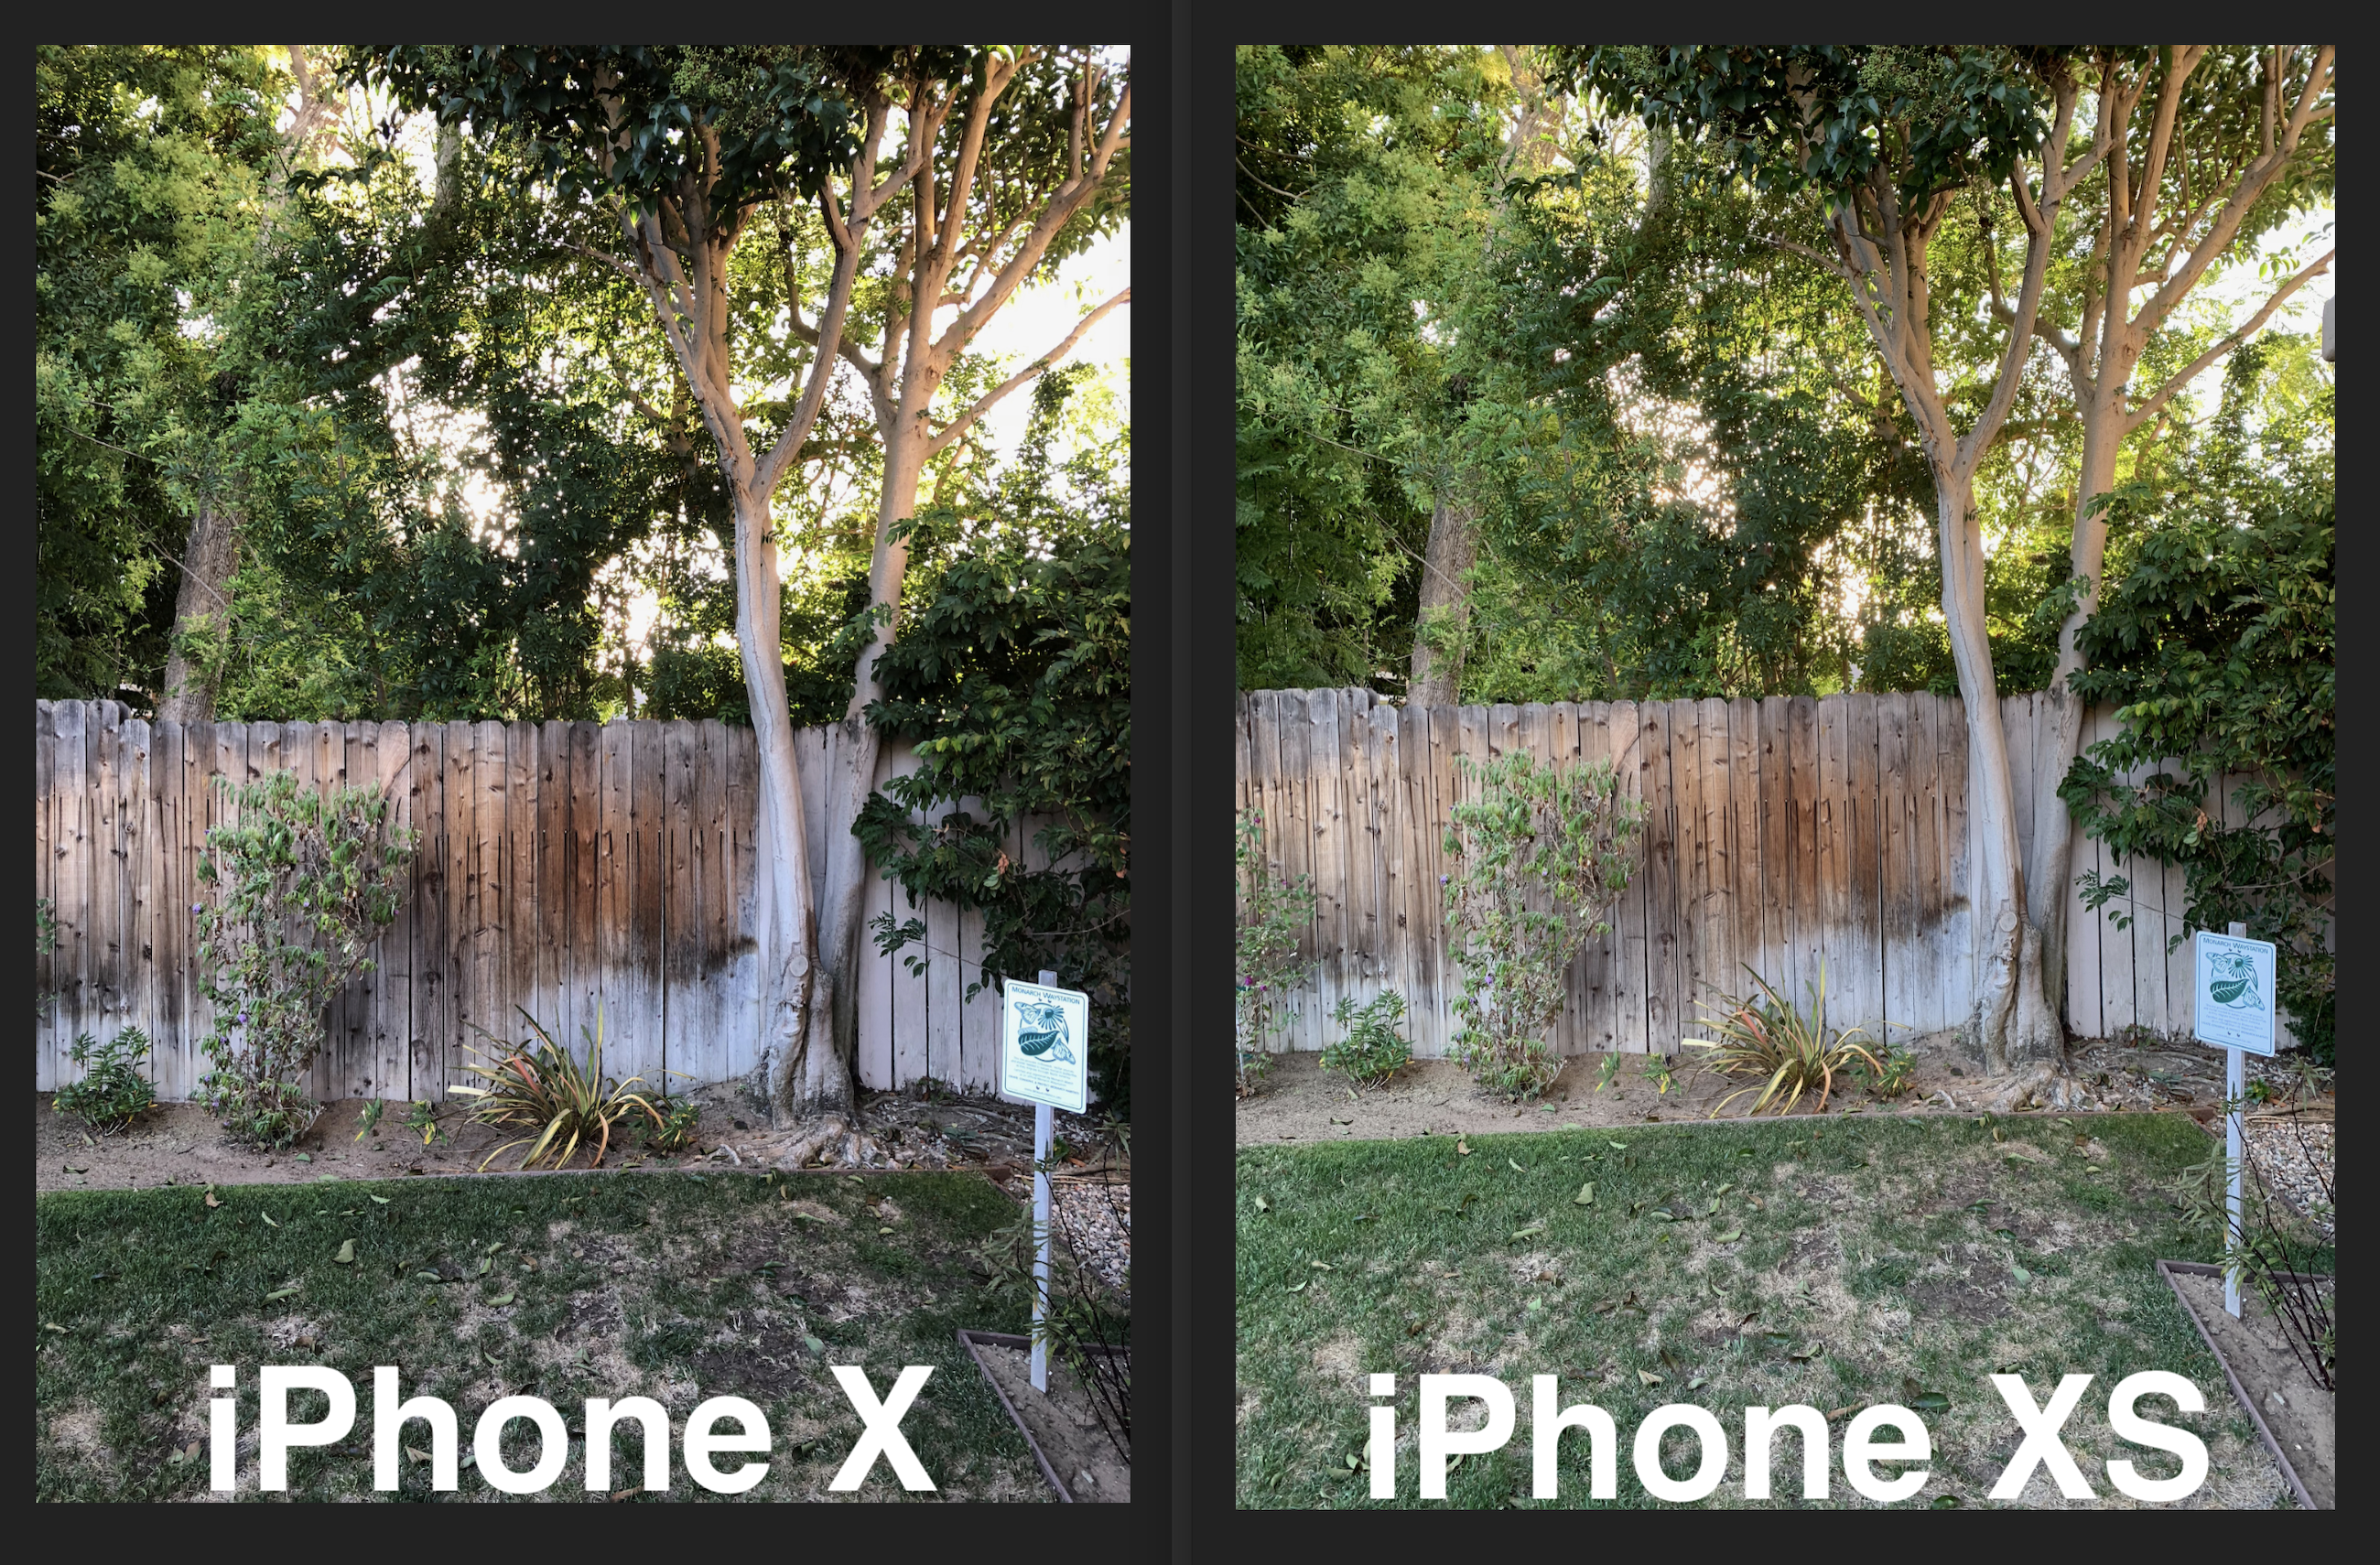 IPhone X vs XS HDR fence trees grass 2600 72